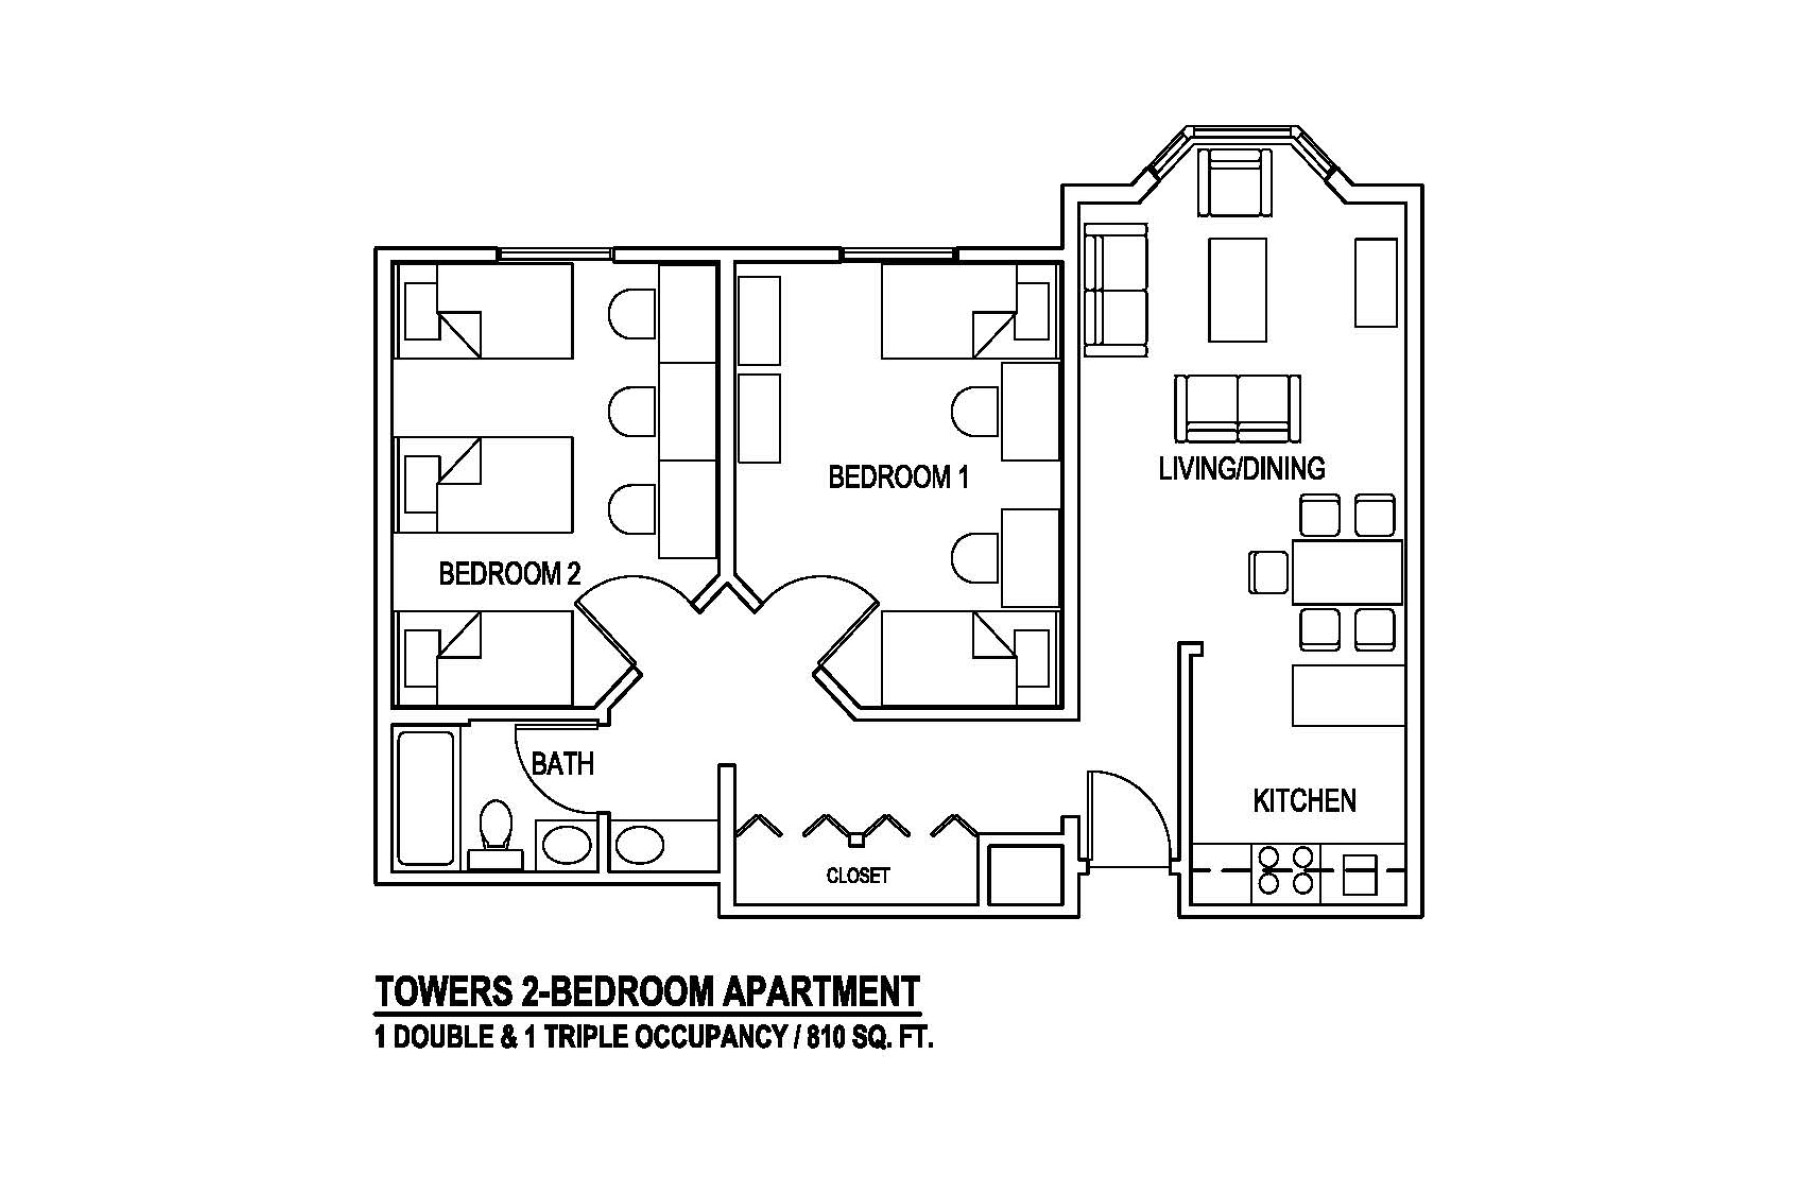 Towers 2-Bedroom Apartment 1 Double & 1 Triple Occupancy / 810 sq. ft